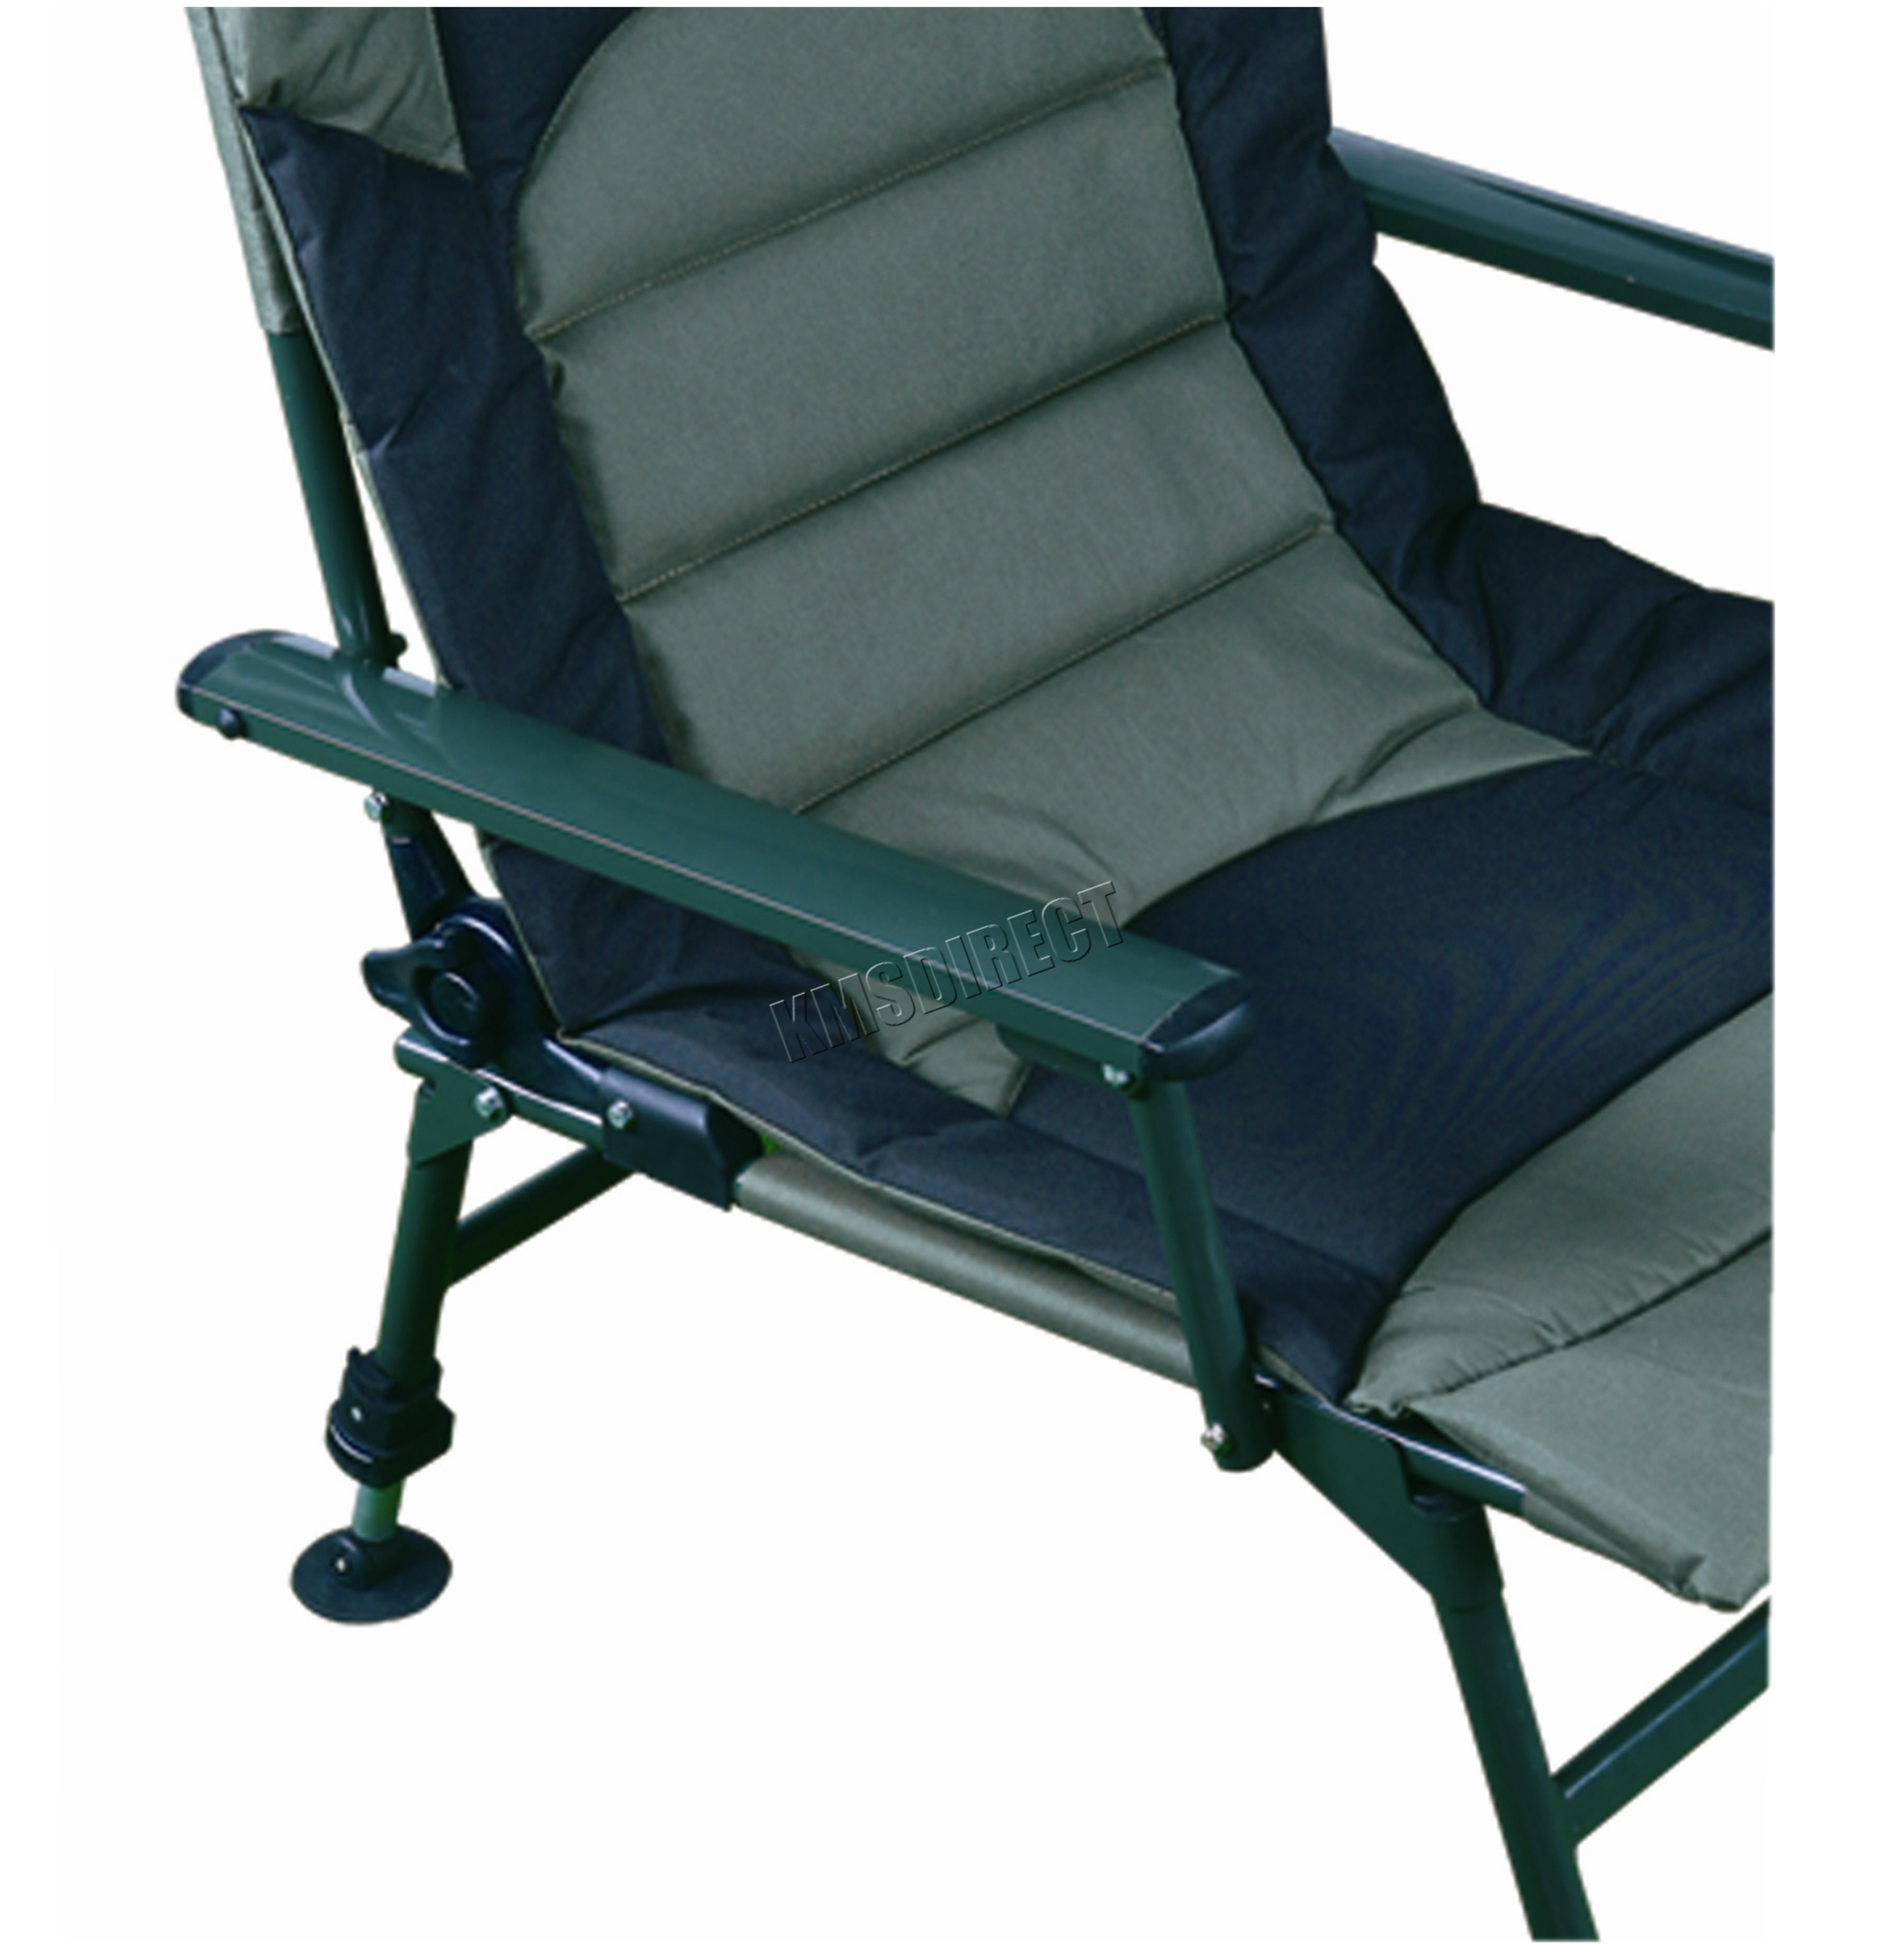 fishing chair best price gym reviews xl carp arm rests folding camping recliner 4